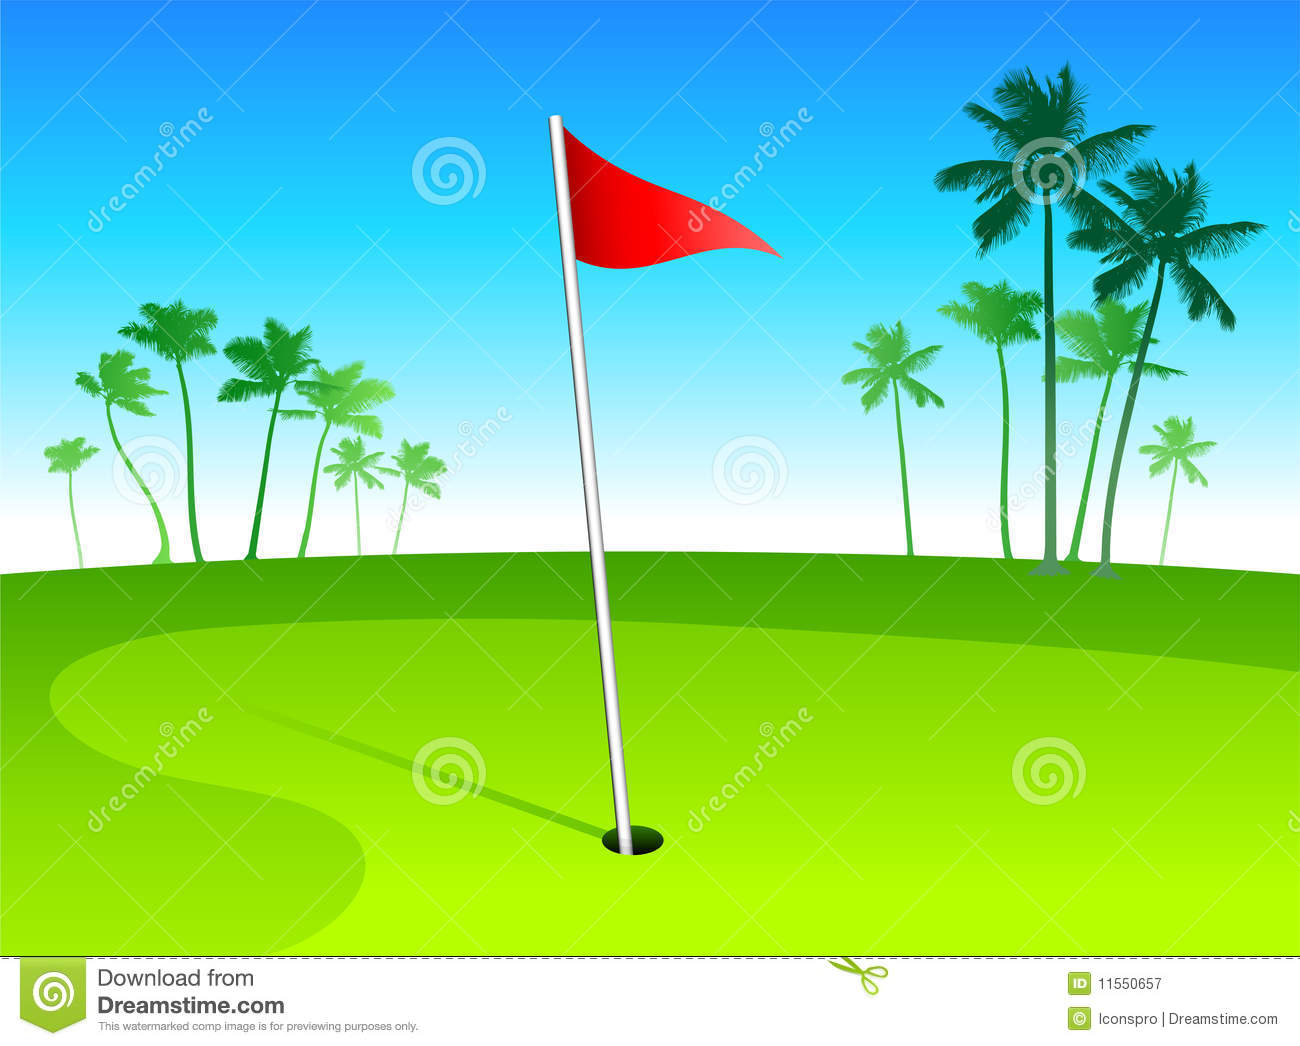 Clip Art Golf Course Greens